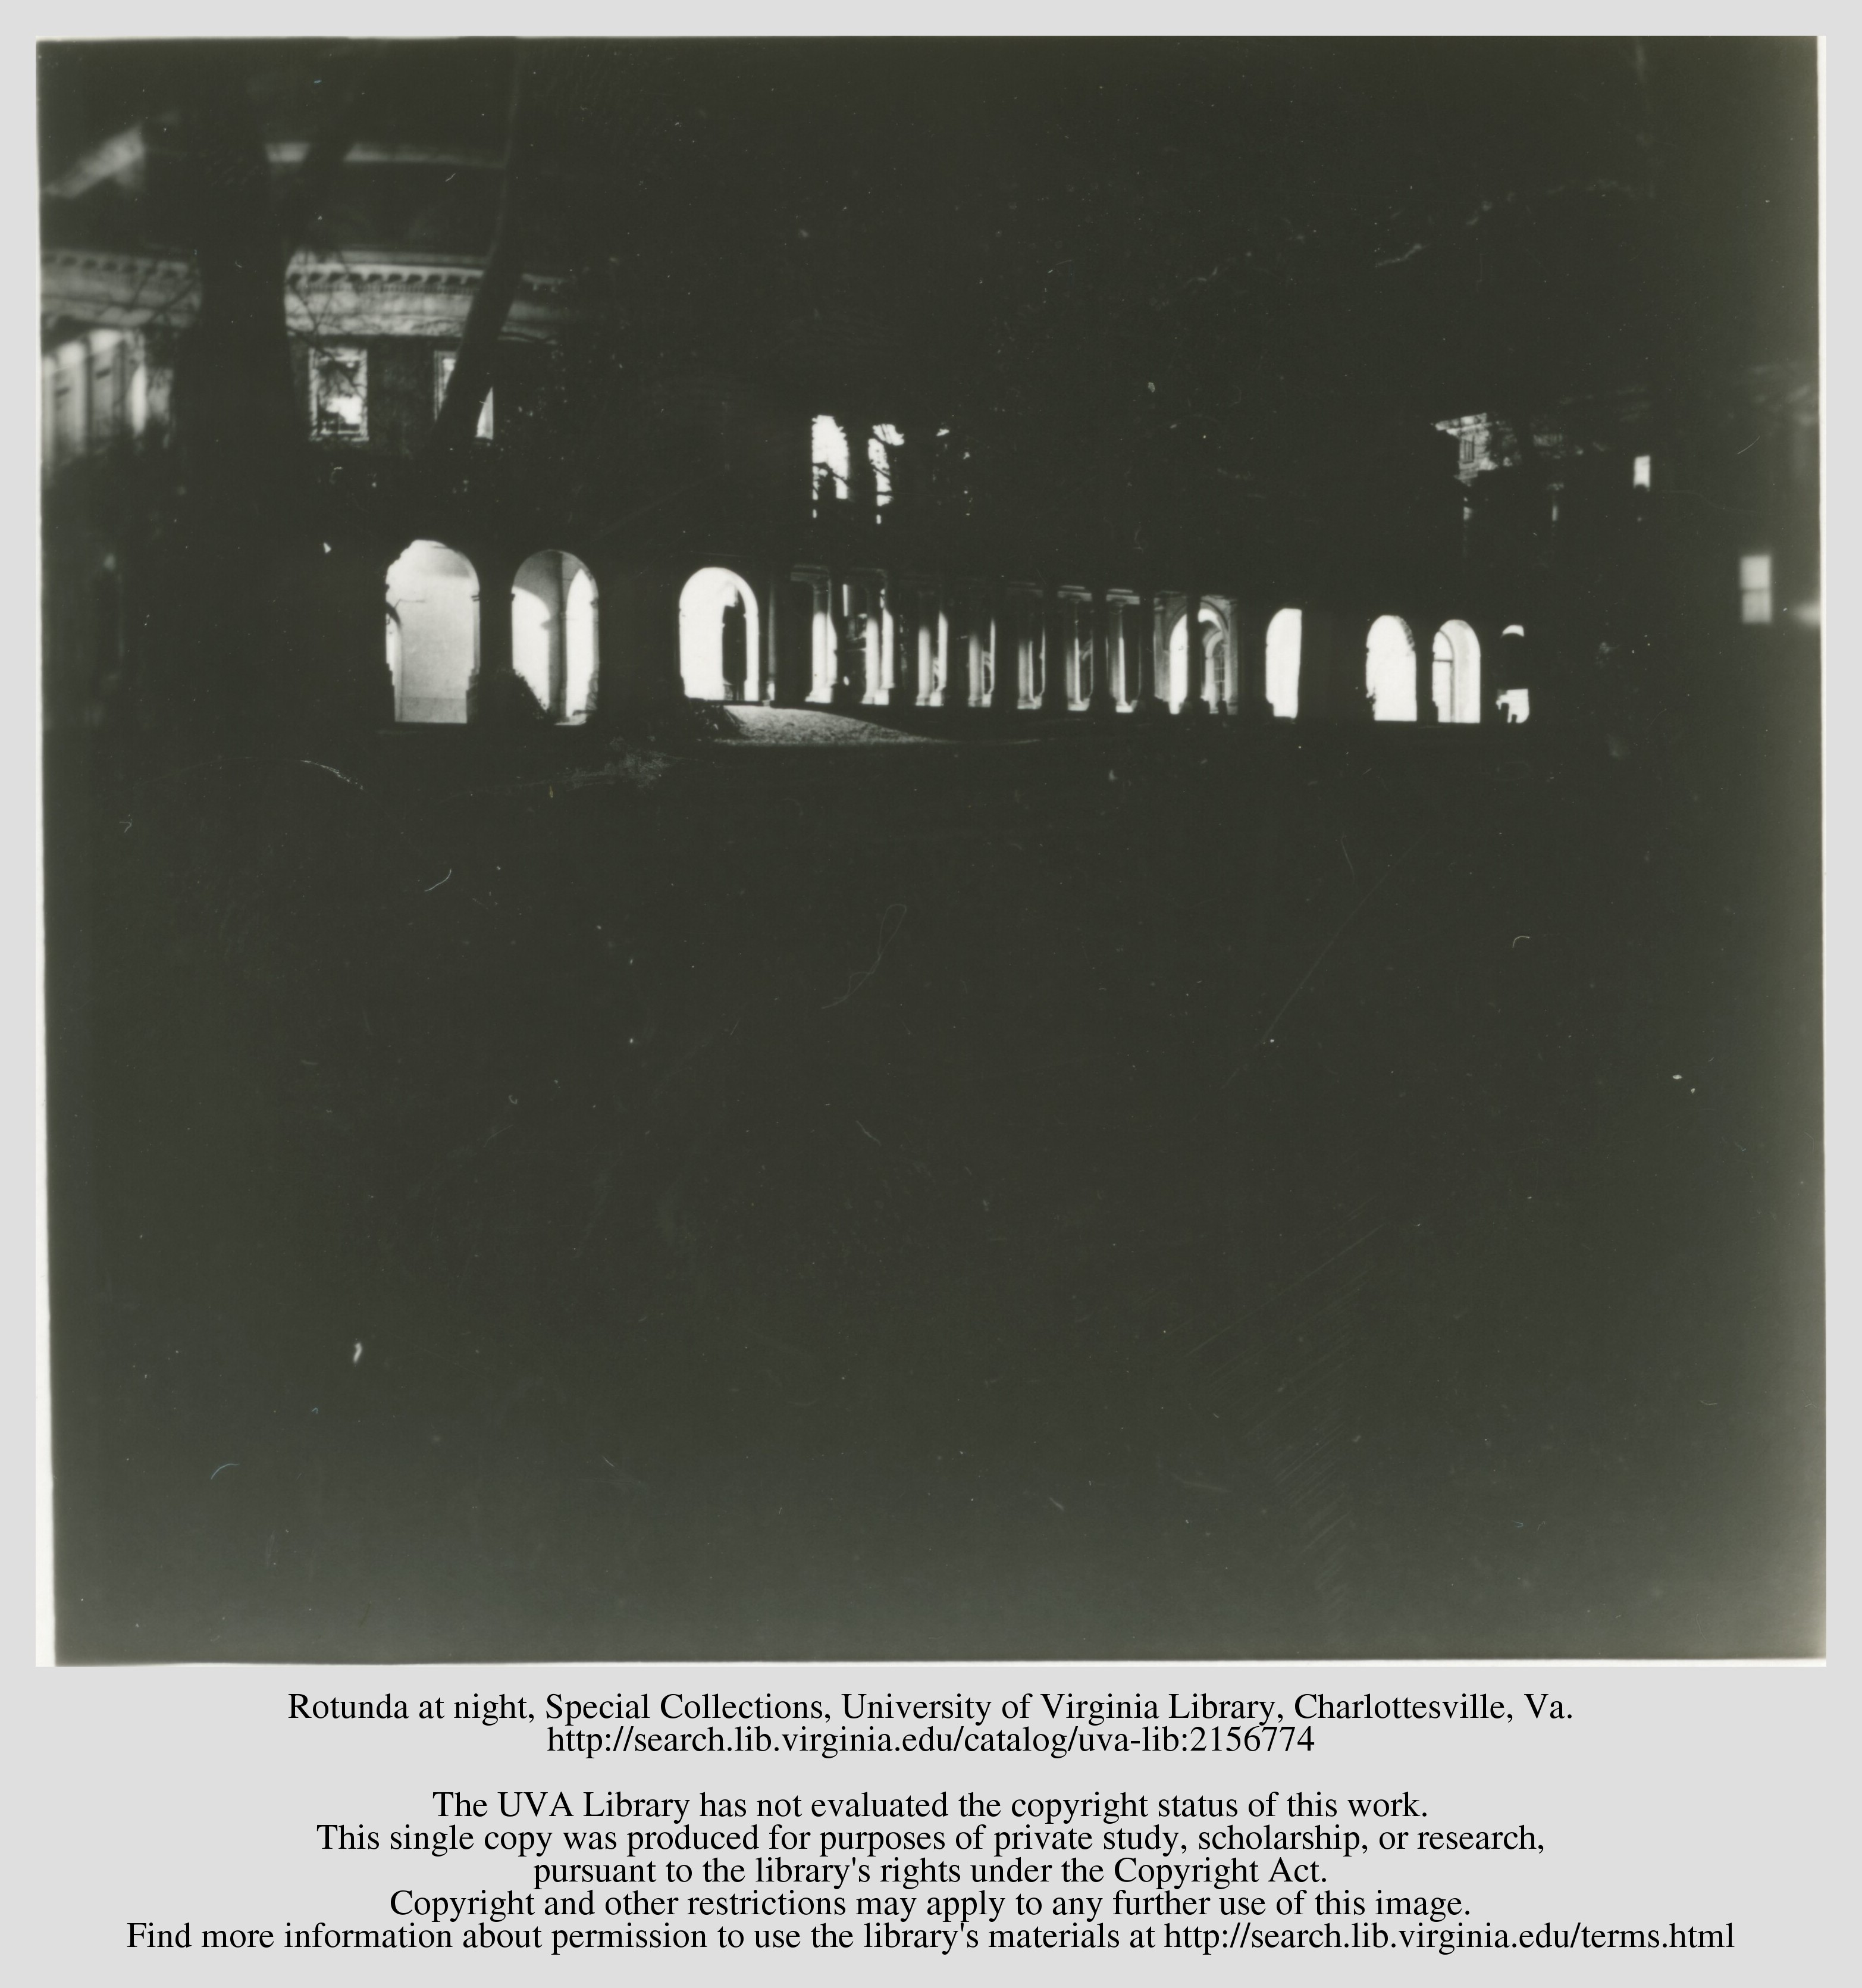 O'Keeffe references the illuminated arches in this photo, taken by George Seward in the 1930s, in her letters.